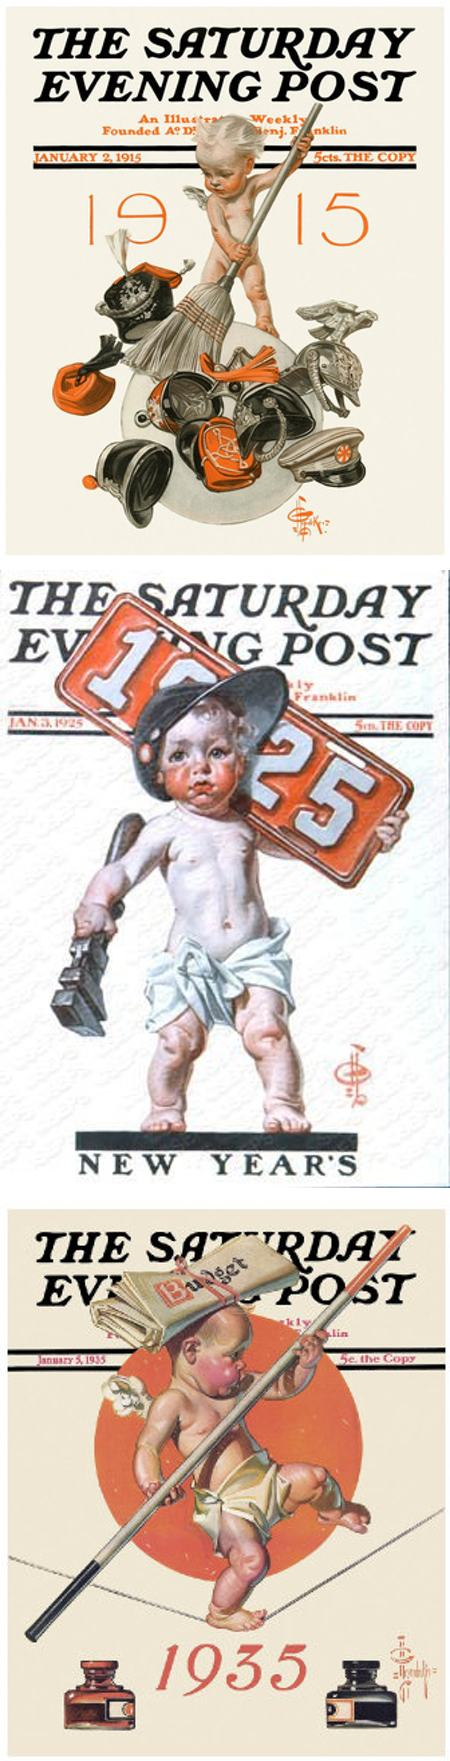 Happy Leyendecker Baby New Year 2015!,  J.C. Leyendecker New Year's babies from covers for The Saturday Evening Post